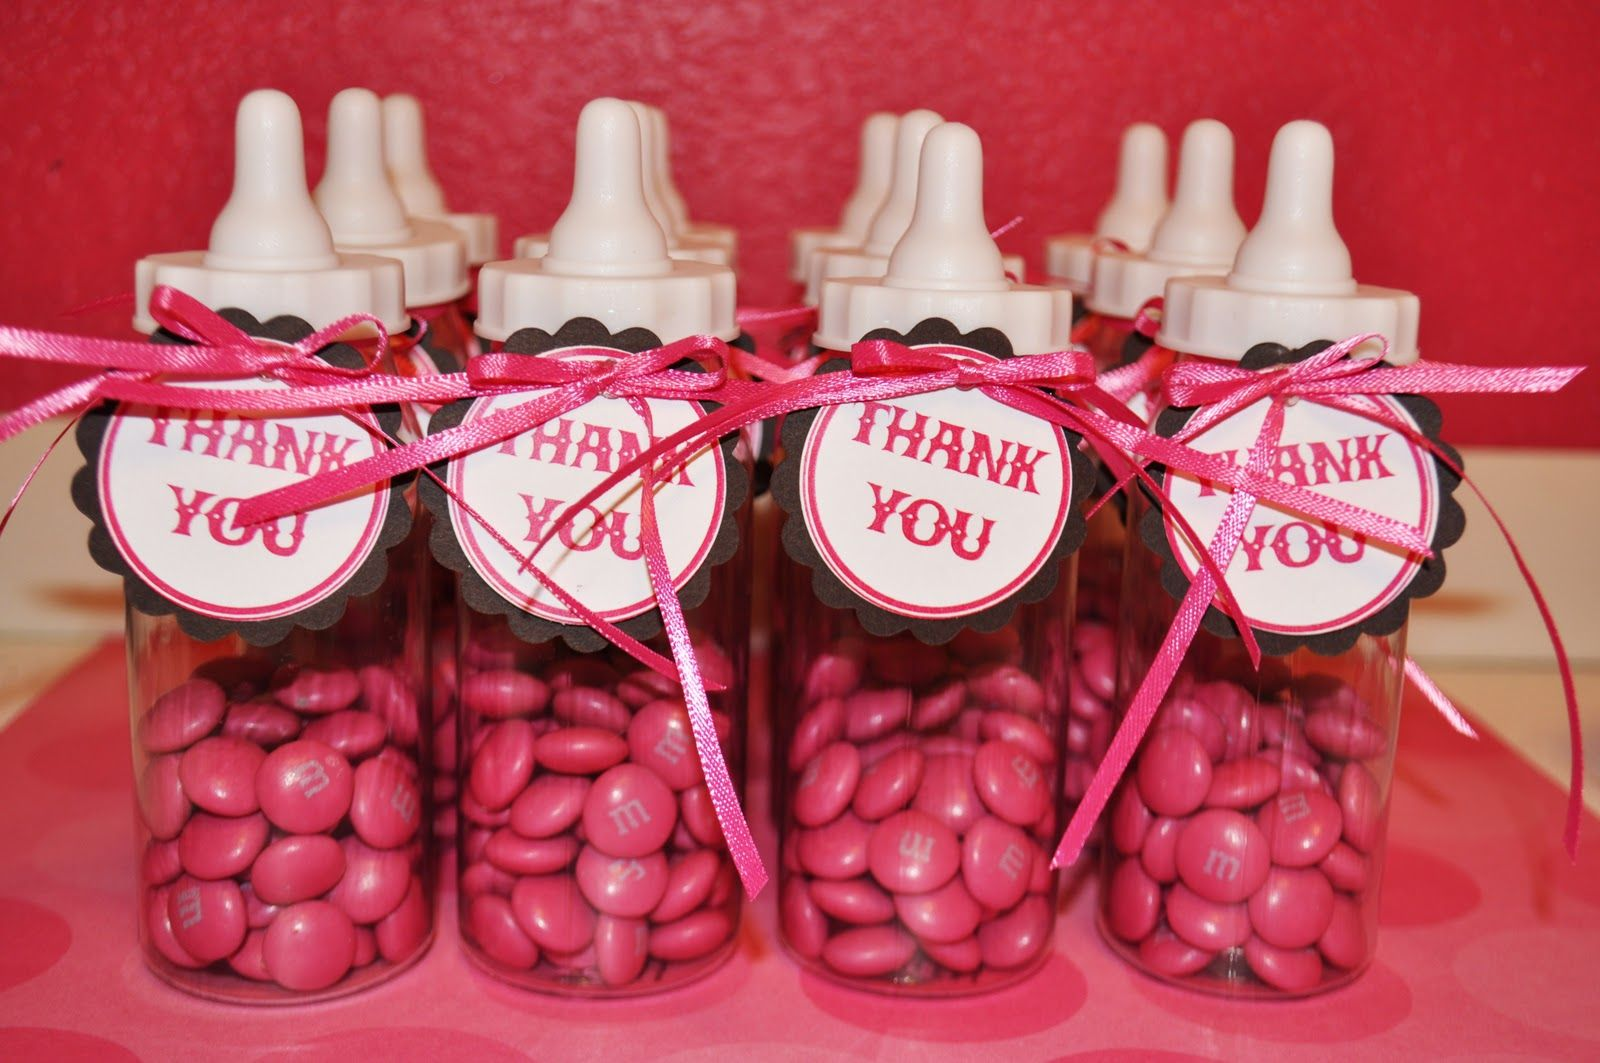 Thank you gifts but with bluebrownred ribbon and candy gift the autocrat baby shower favors mini bottles cute baby shower decorations to make solutioingenieria